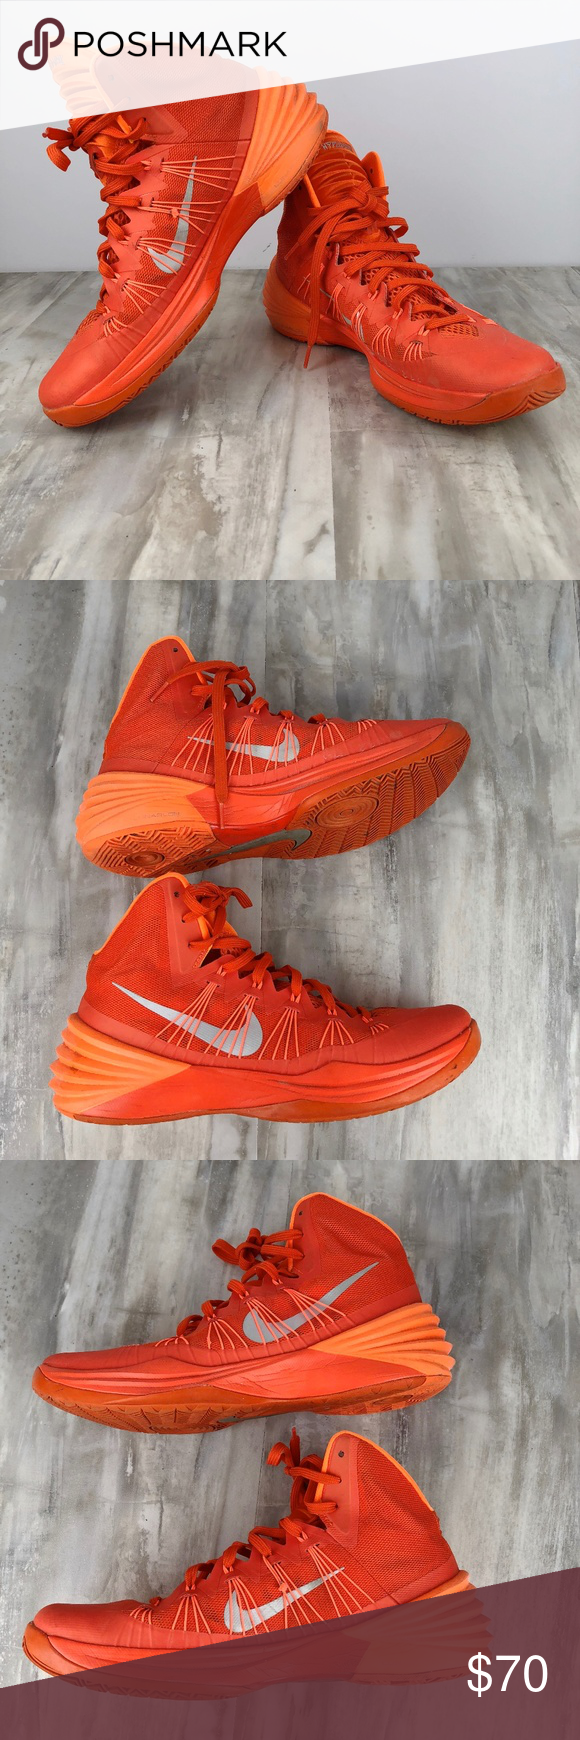 ae54e30662b4 ... australia nike hyperdunk 2013 high top basketball shoes nike mens  hyperdunk 2013 tb brilliant orange basketball